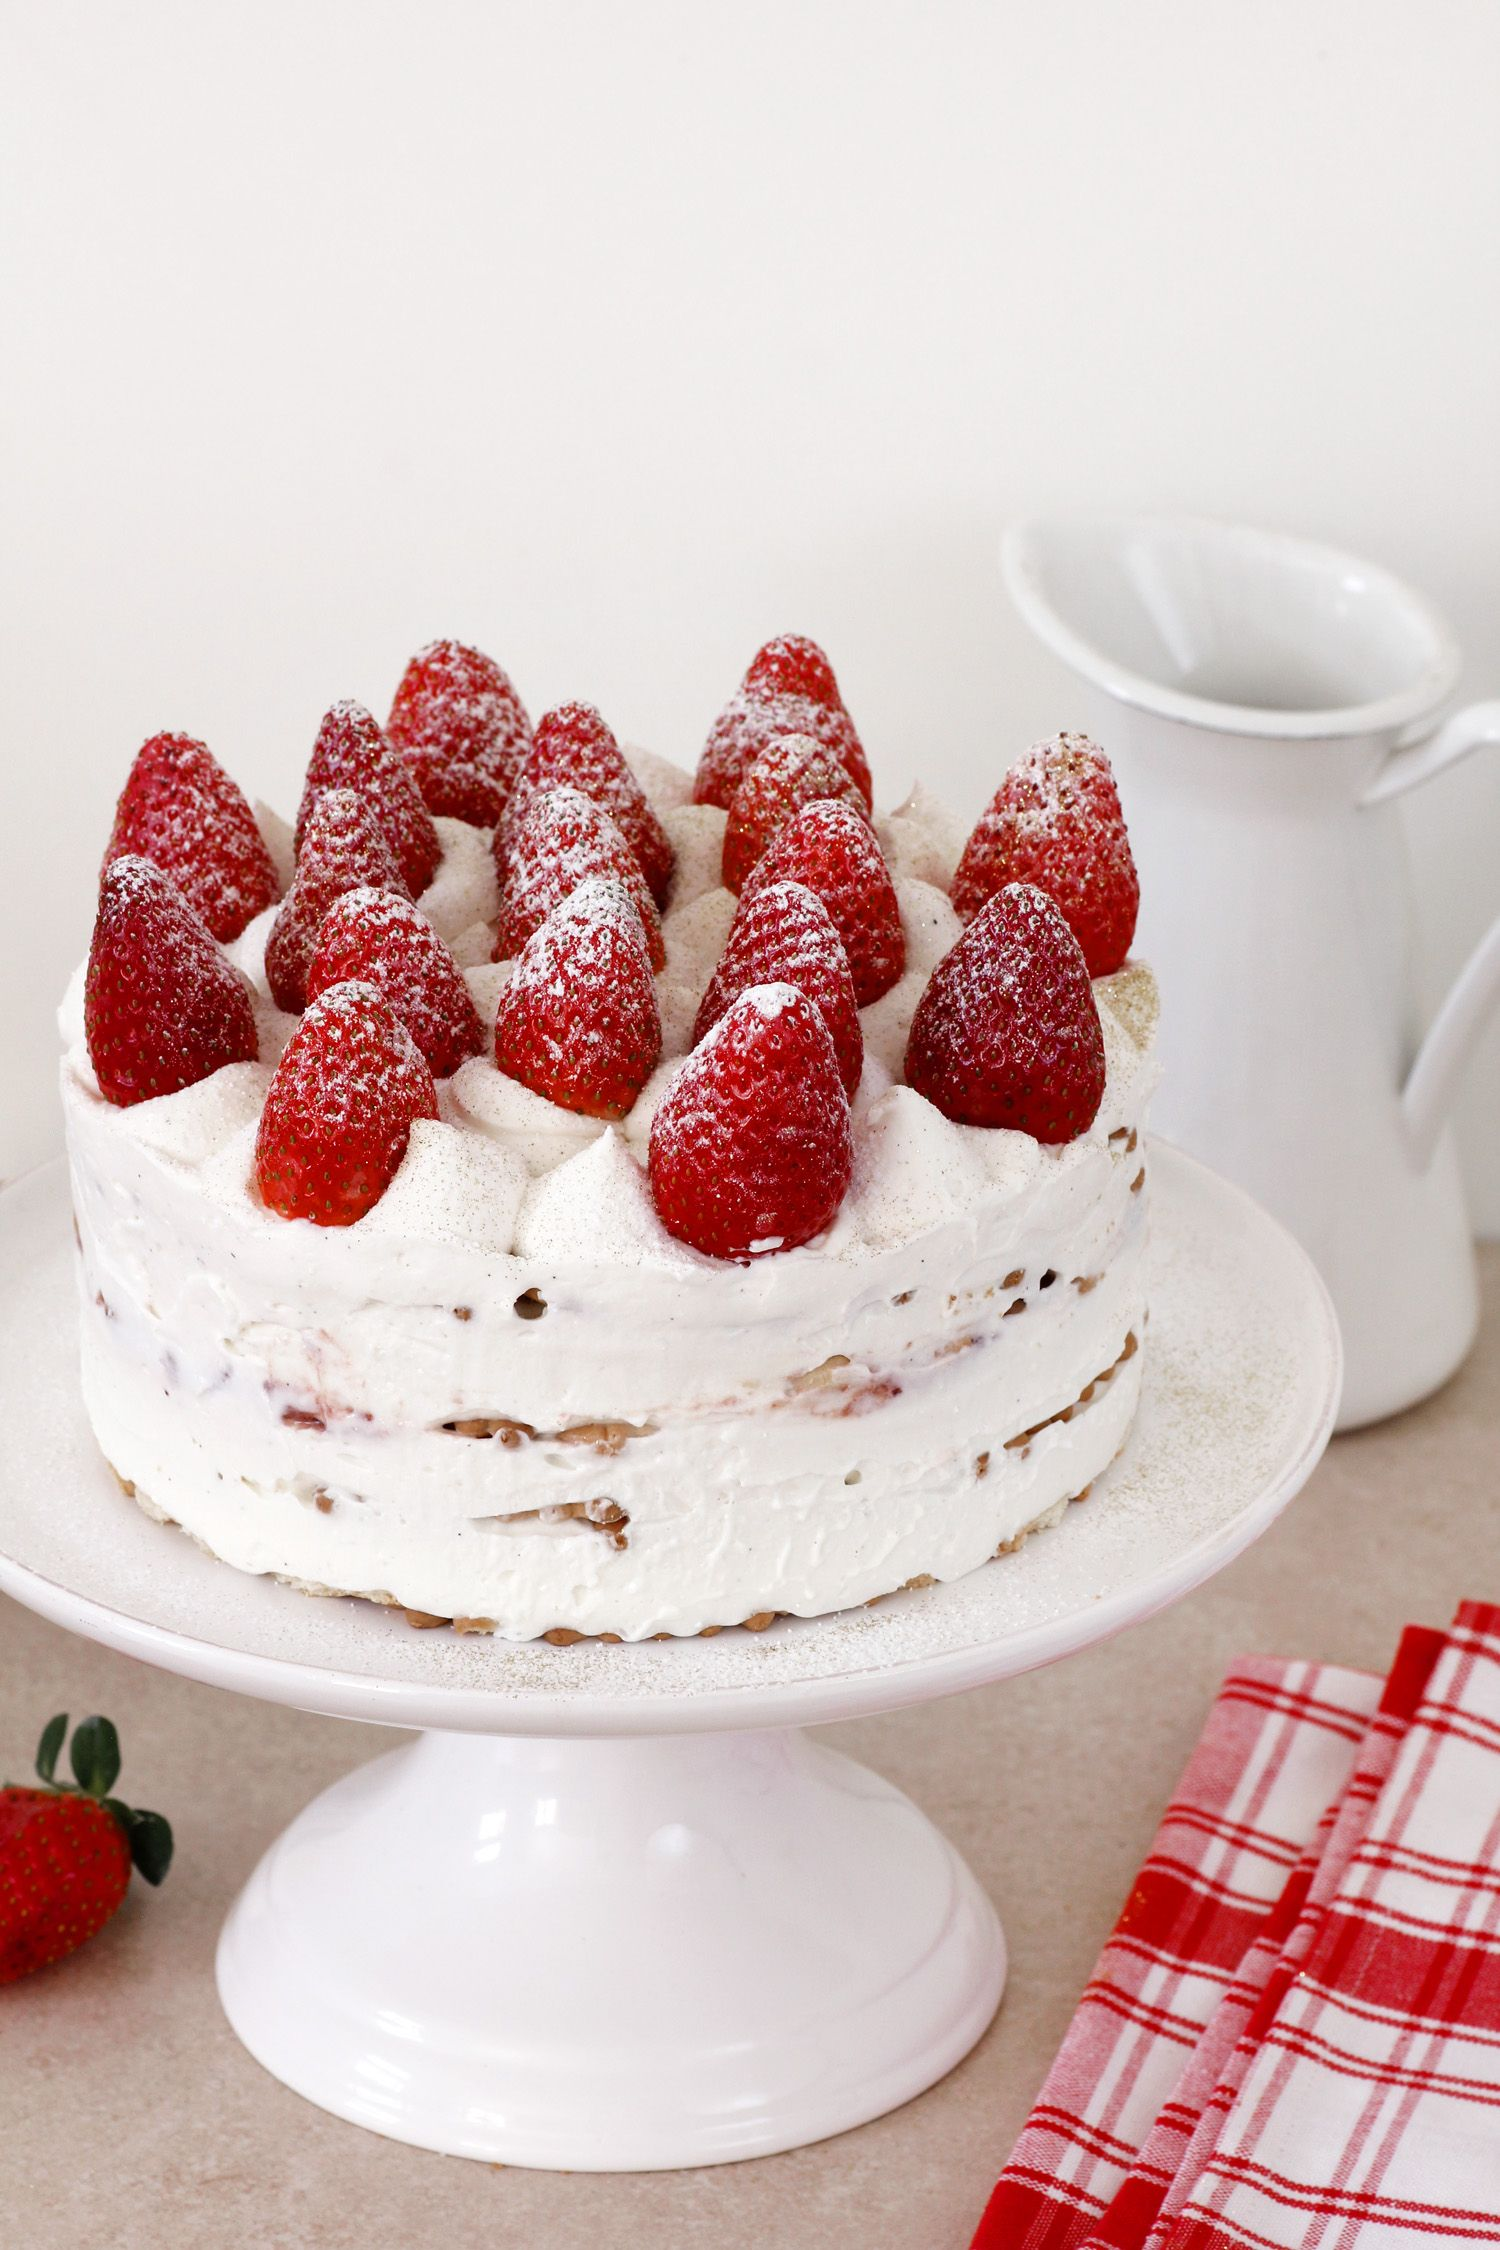 Strawberry and Cream Icebox Cake